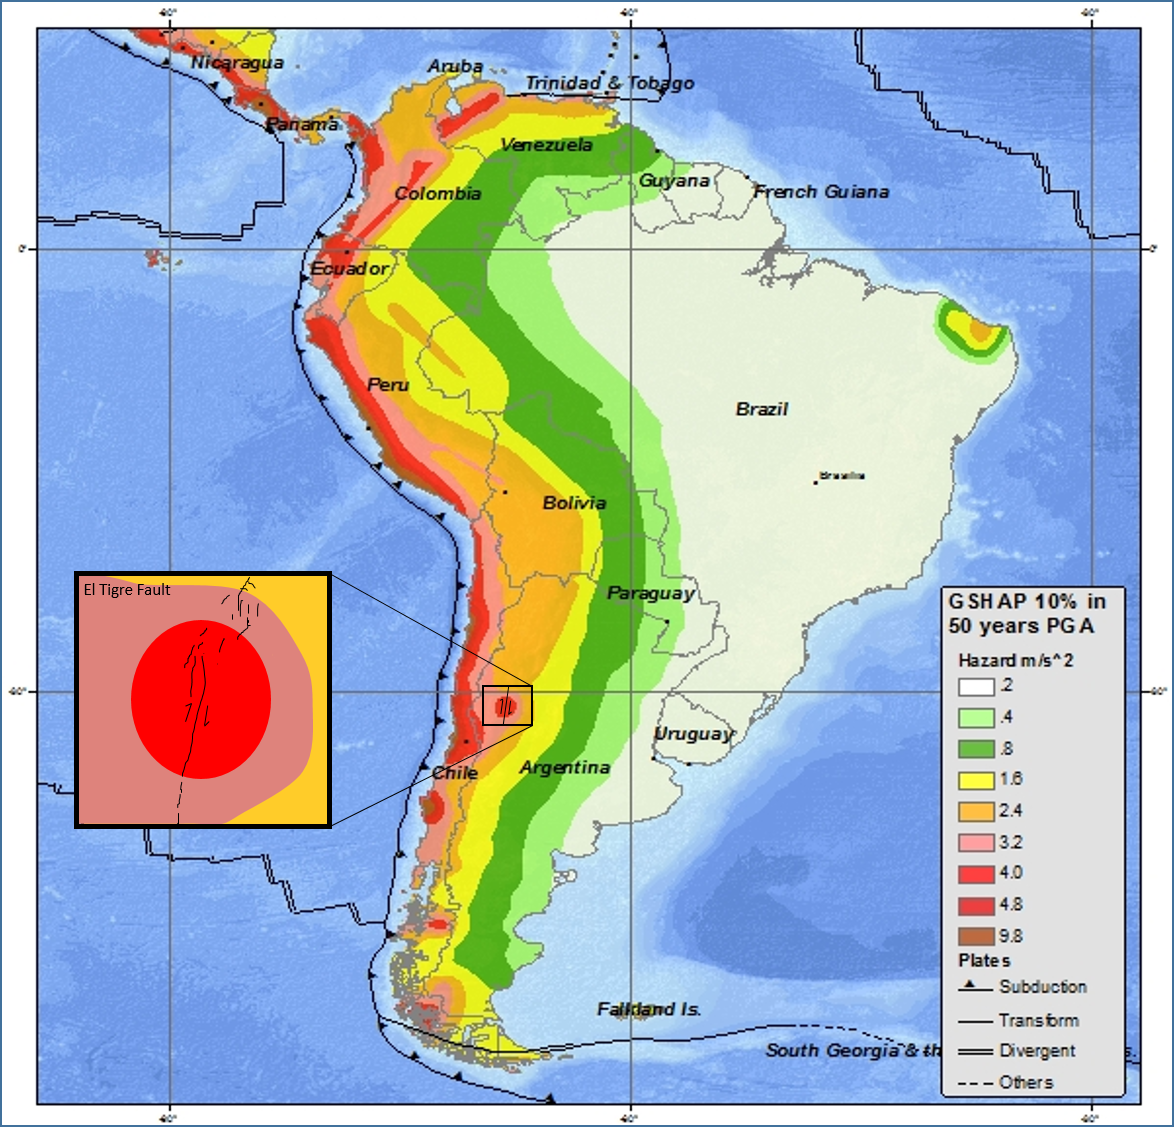 united states fault lines map with File South America Seismic Hazard Map With Estimated El Tigre Fault Location Inset on 273945589814982118 likewise Paranormal Highway Of America Part 1 The Unexplained Files Episode additionally State in addition San Andreas Fault Pictures 4116382 furthermore File south america seismic hazard map with estimated el tigre fault location inset.